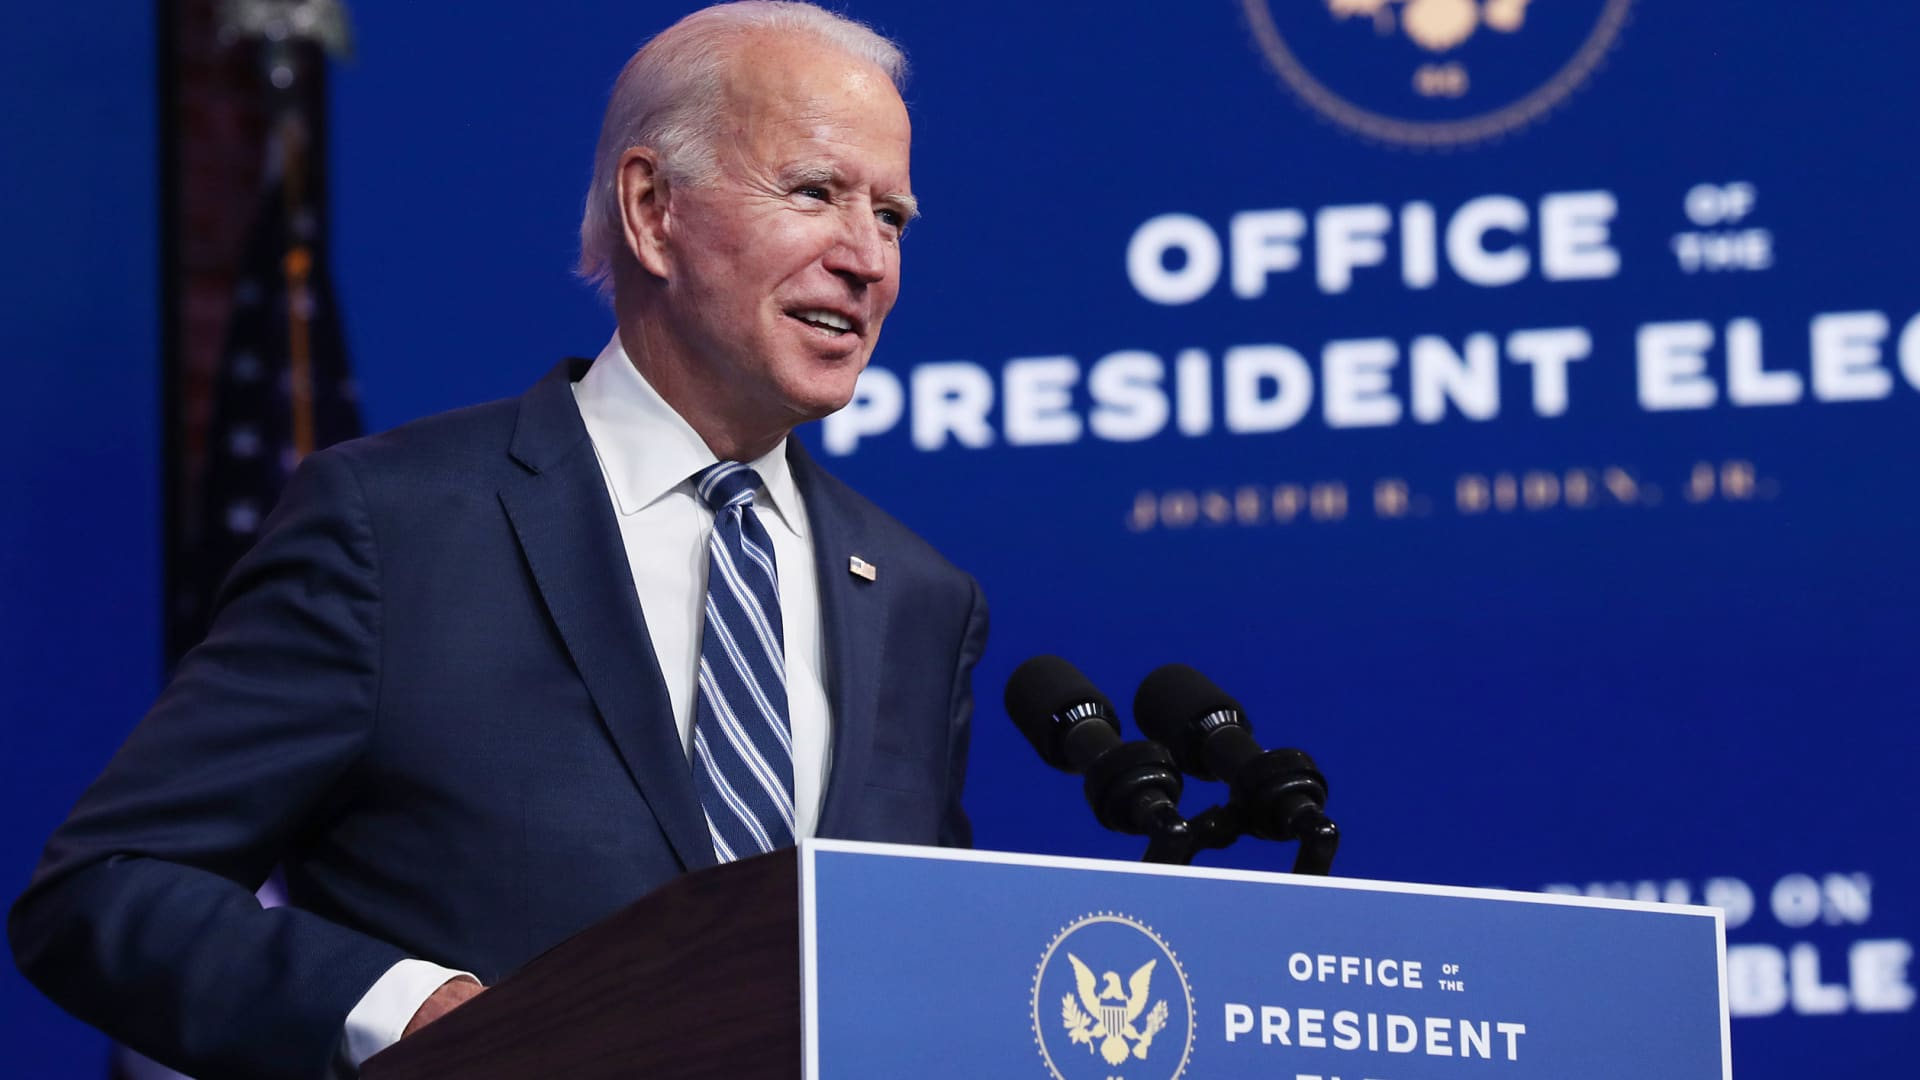 President-elect Joe Biden addresses media about the Trump Administration's lawsuit to overturn the Affordable Care Act on Nov. 10, 2020 in Wilmington, Delaware.